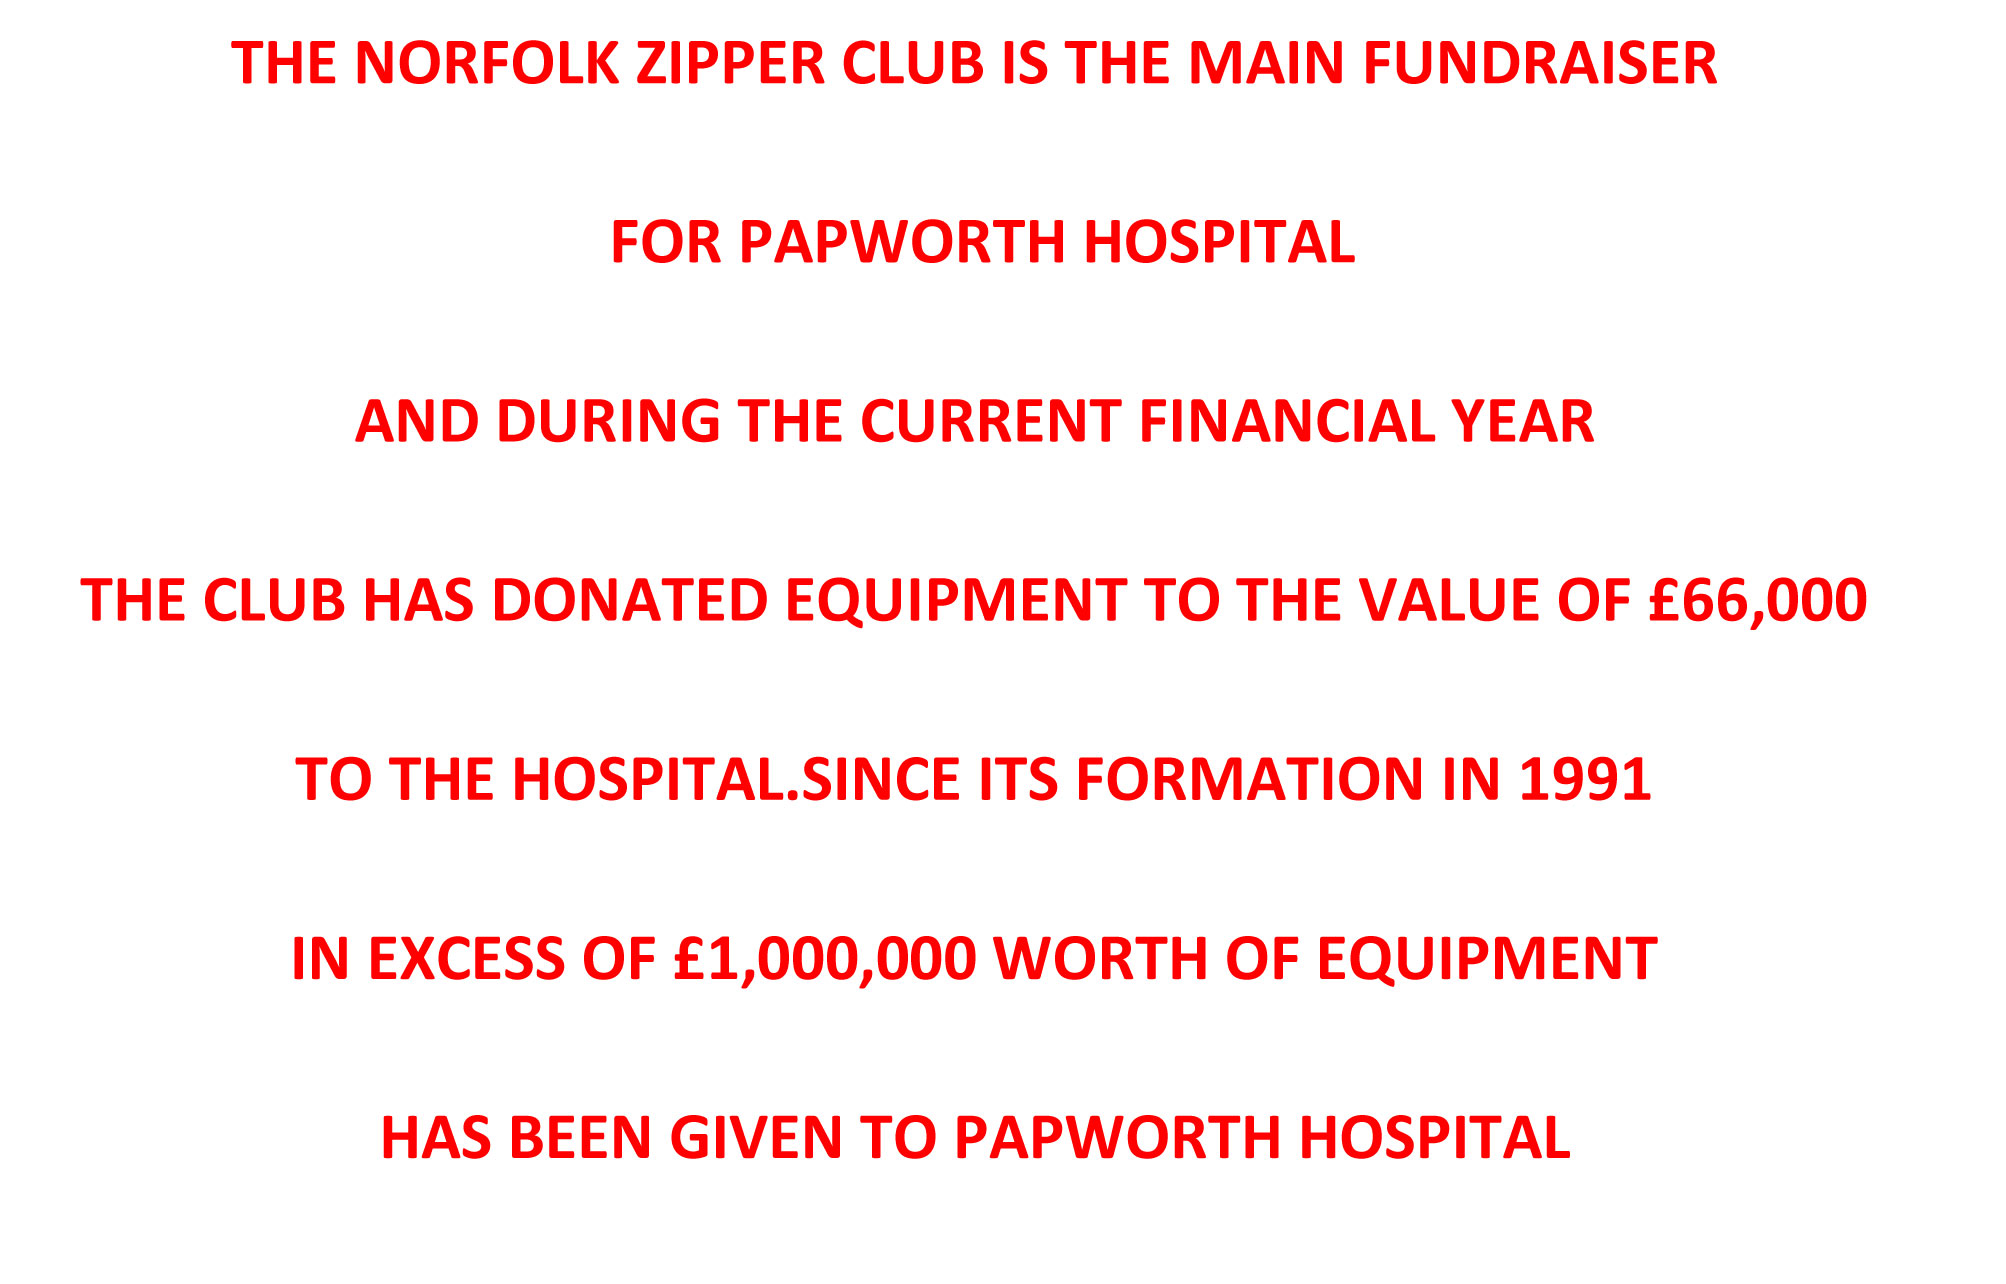 the-norfolk-zipper-club-is-.jpg